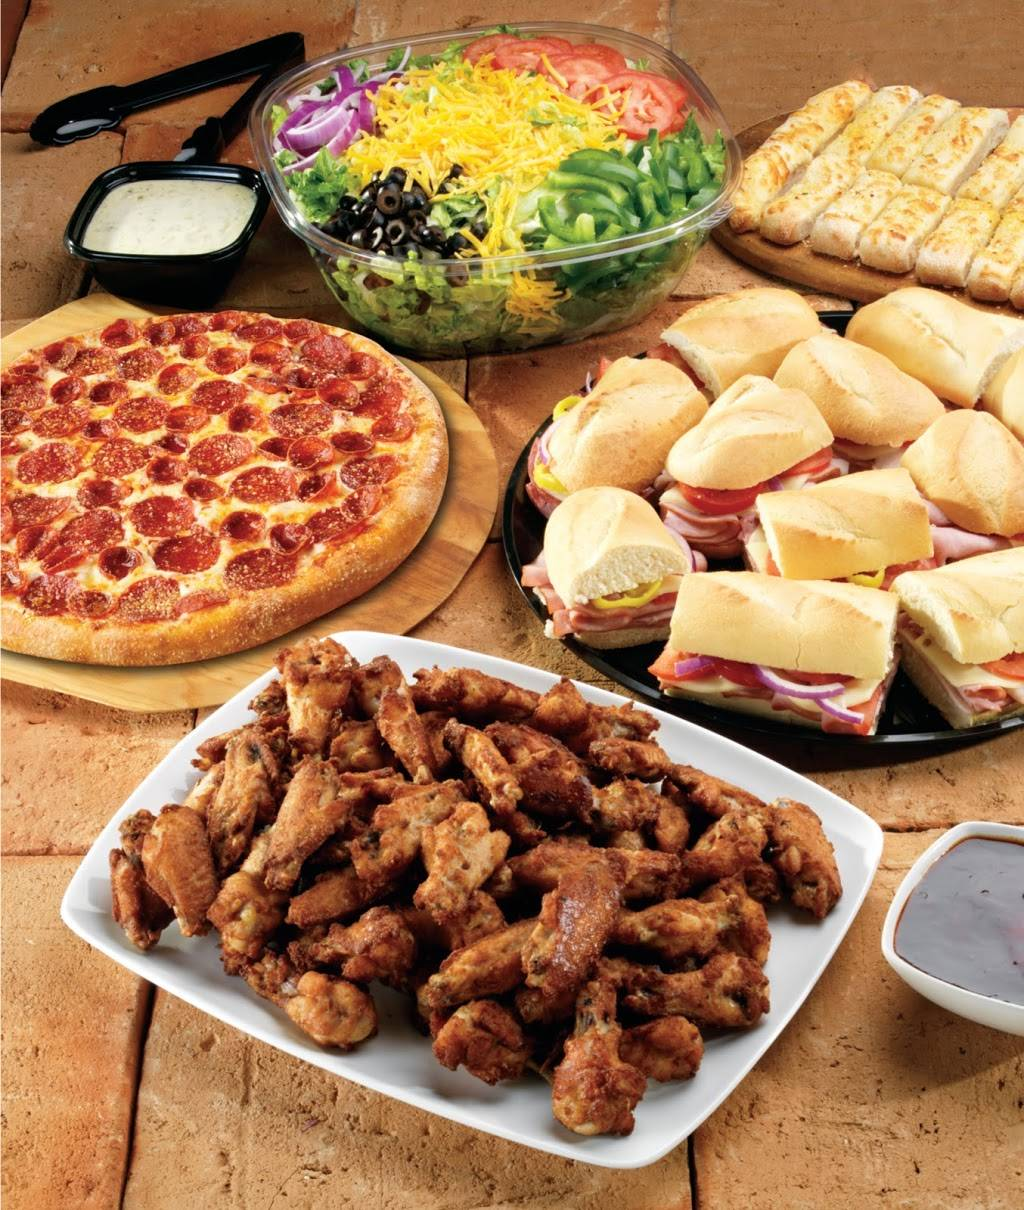 Marcos Pizza | meal delivery | 5585 S 3500 W Suite A, Roy, UT 84067, USA | 8017797990 OR +1 801-779-7990